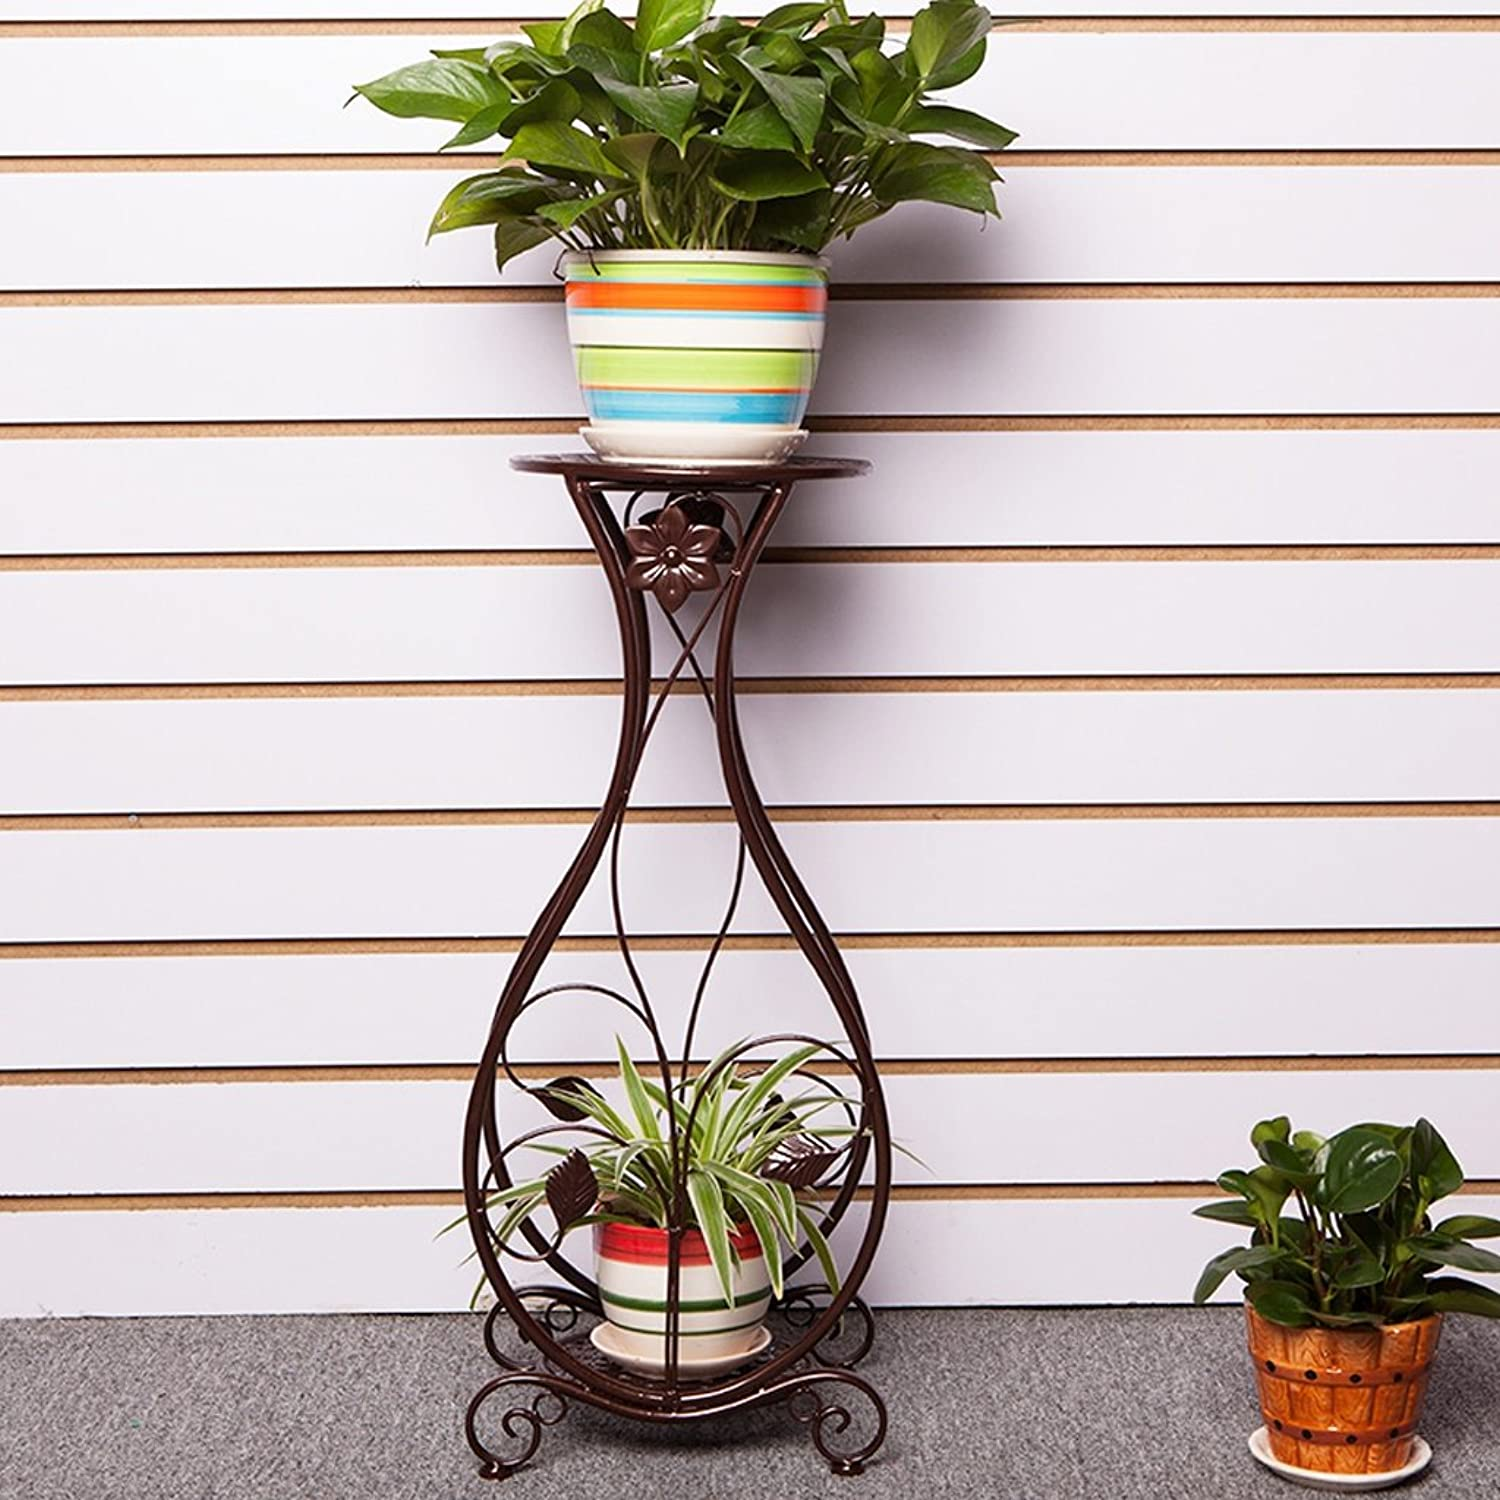 Flower Stand Shelf Multi Layer Indoor Plant Pot Rack Balcony Living Room Flower Display Shelf (color   Bronze)